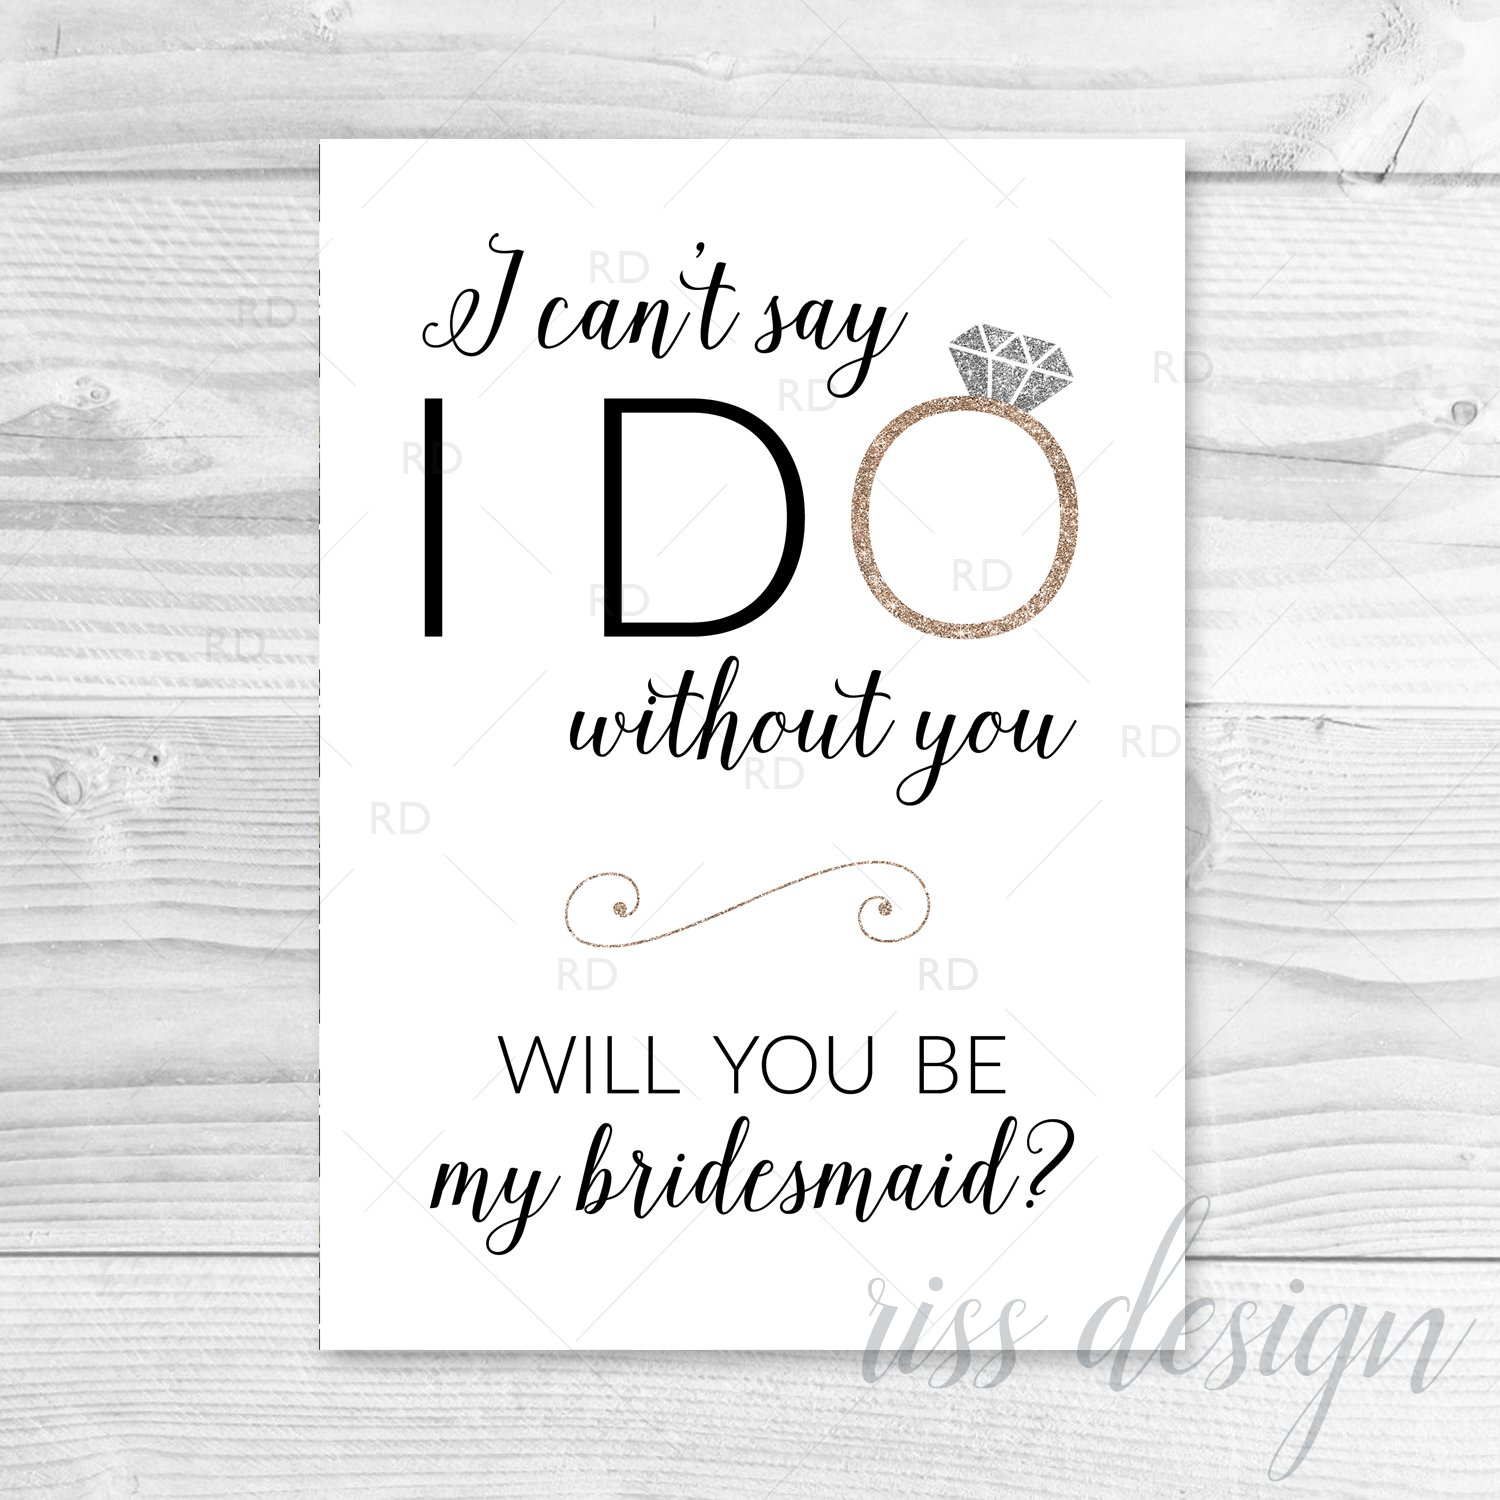 picture relating to Will You Be My Bridesmaid Printable identify I cant say I do devoid of yourself will oneself be my bridesmaid? Printable